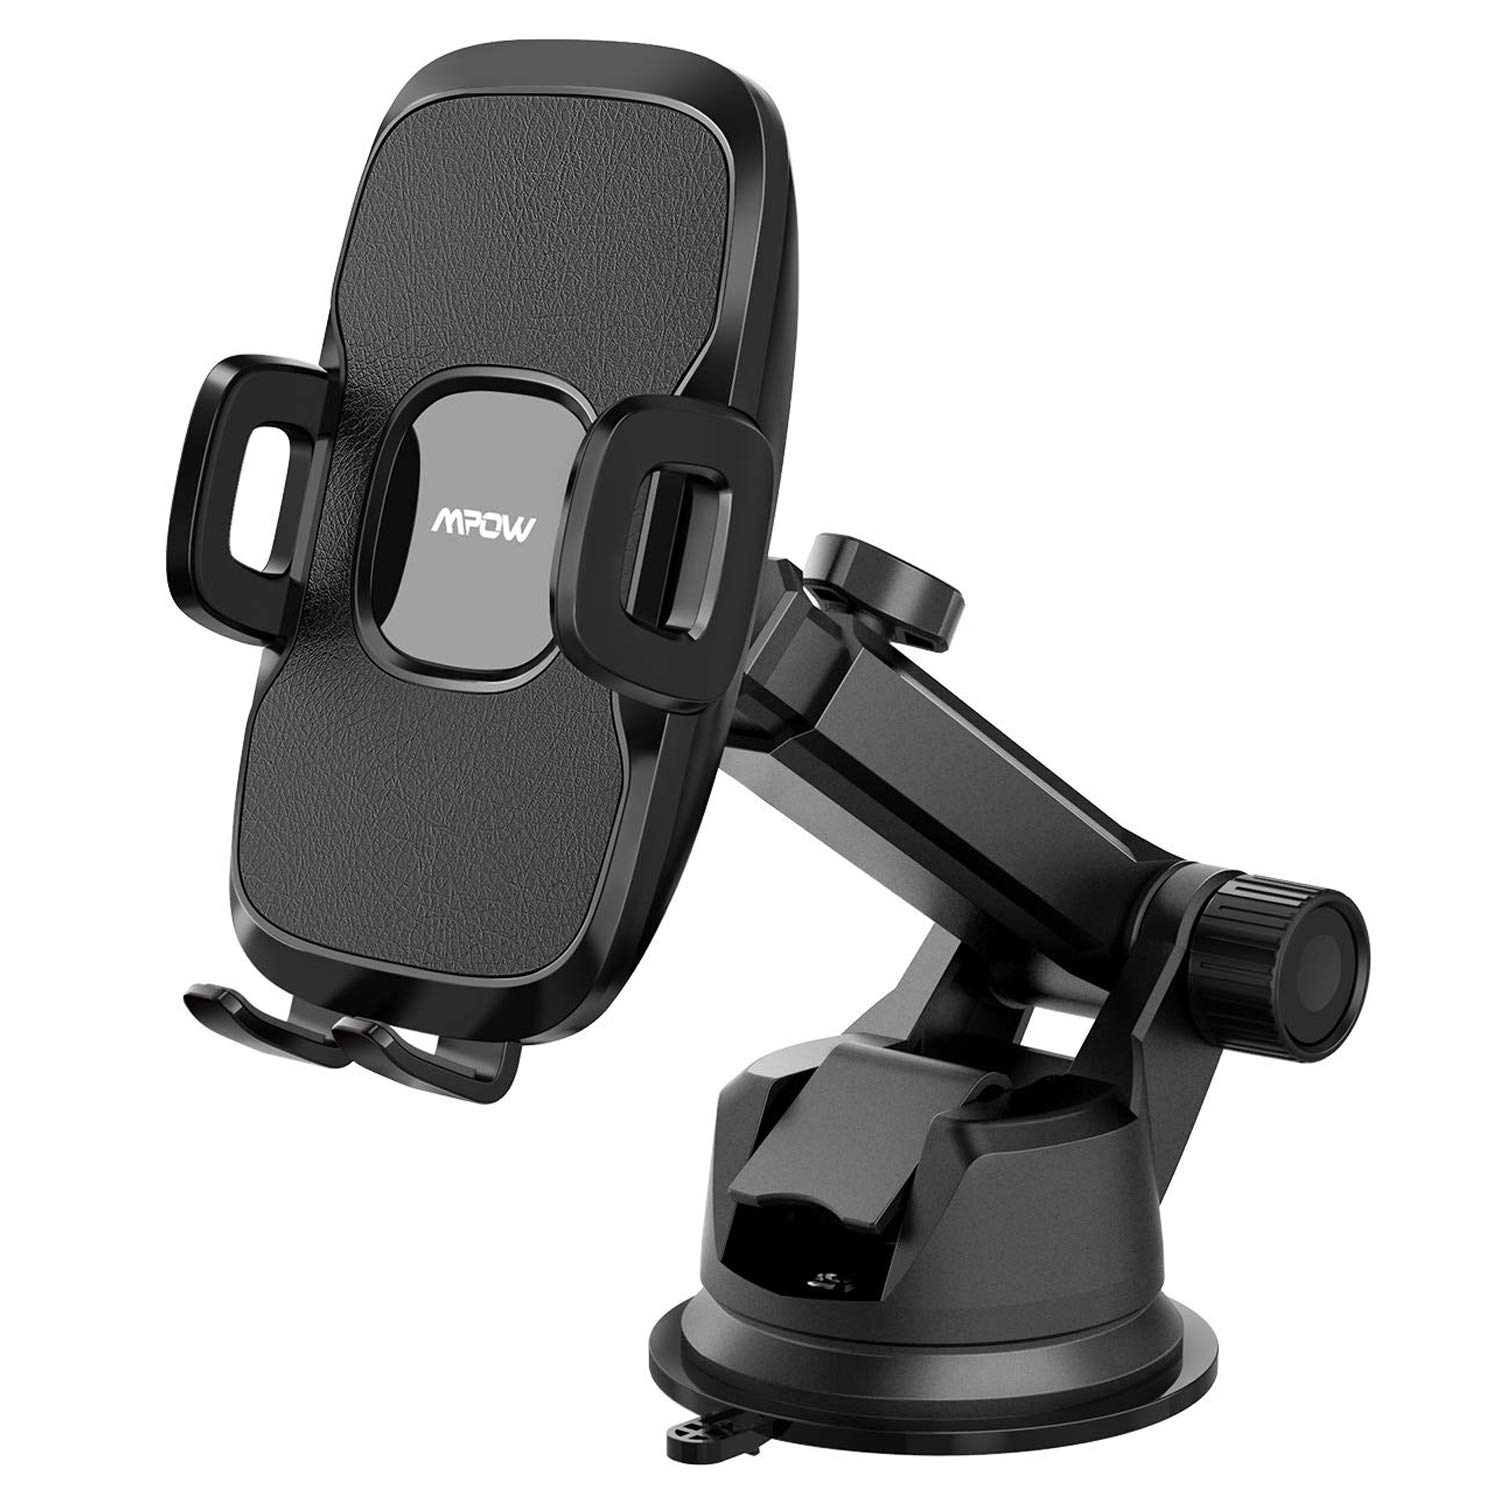 Mpow Car Mount Holder, Universal Dashboard Car Phone Mount, Windshield Car Phone Holder, Washable Gel Pad Compatible iPhone XR,XS Max,X,8, Galaxy S10,S9,S8,S7, Google, One Plus, Moto, Black by Mpow